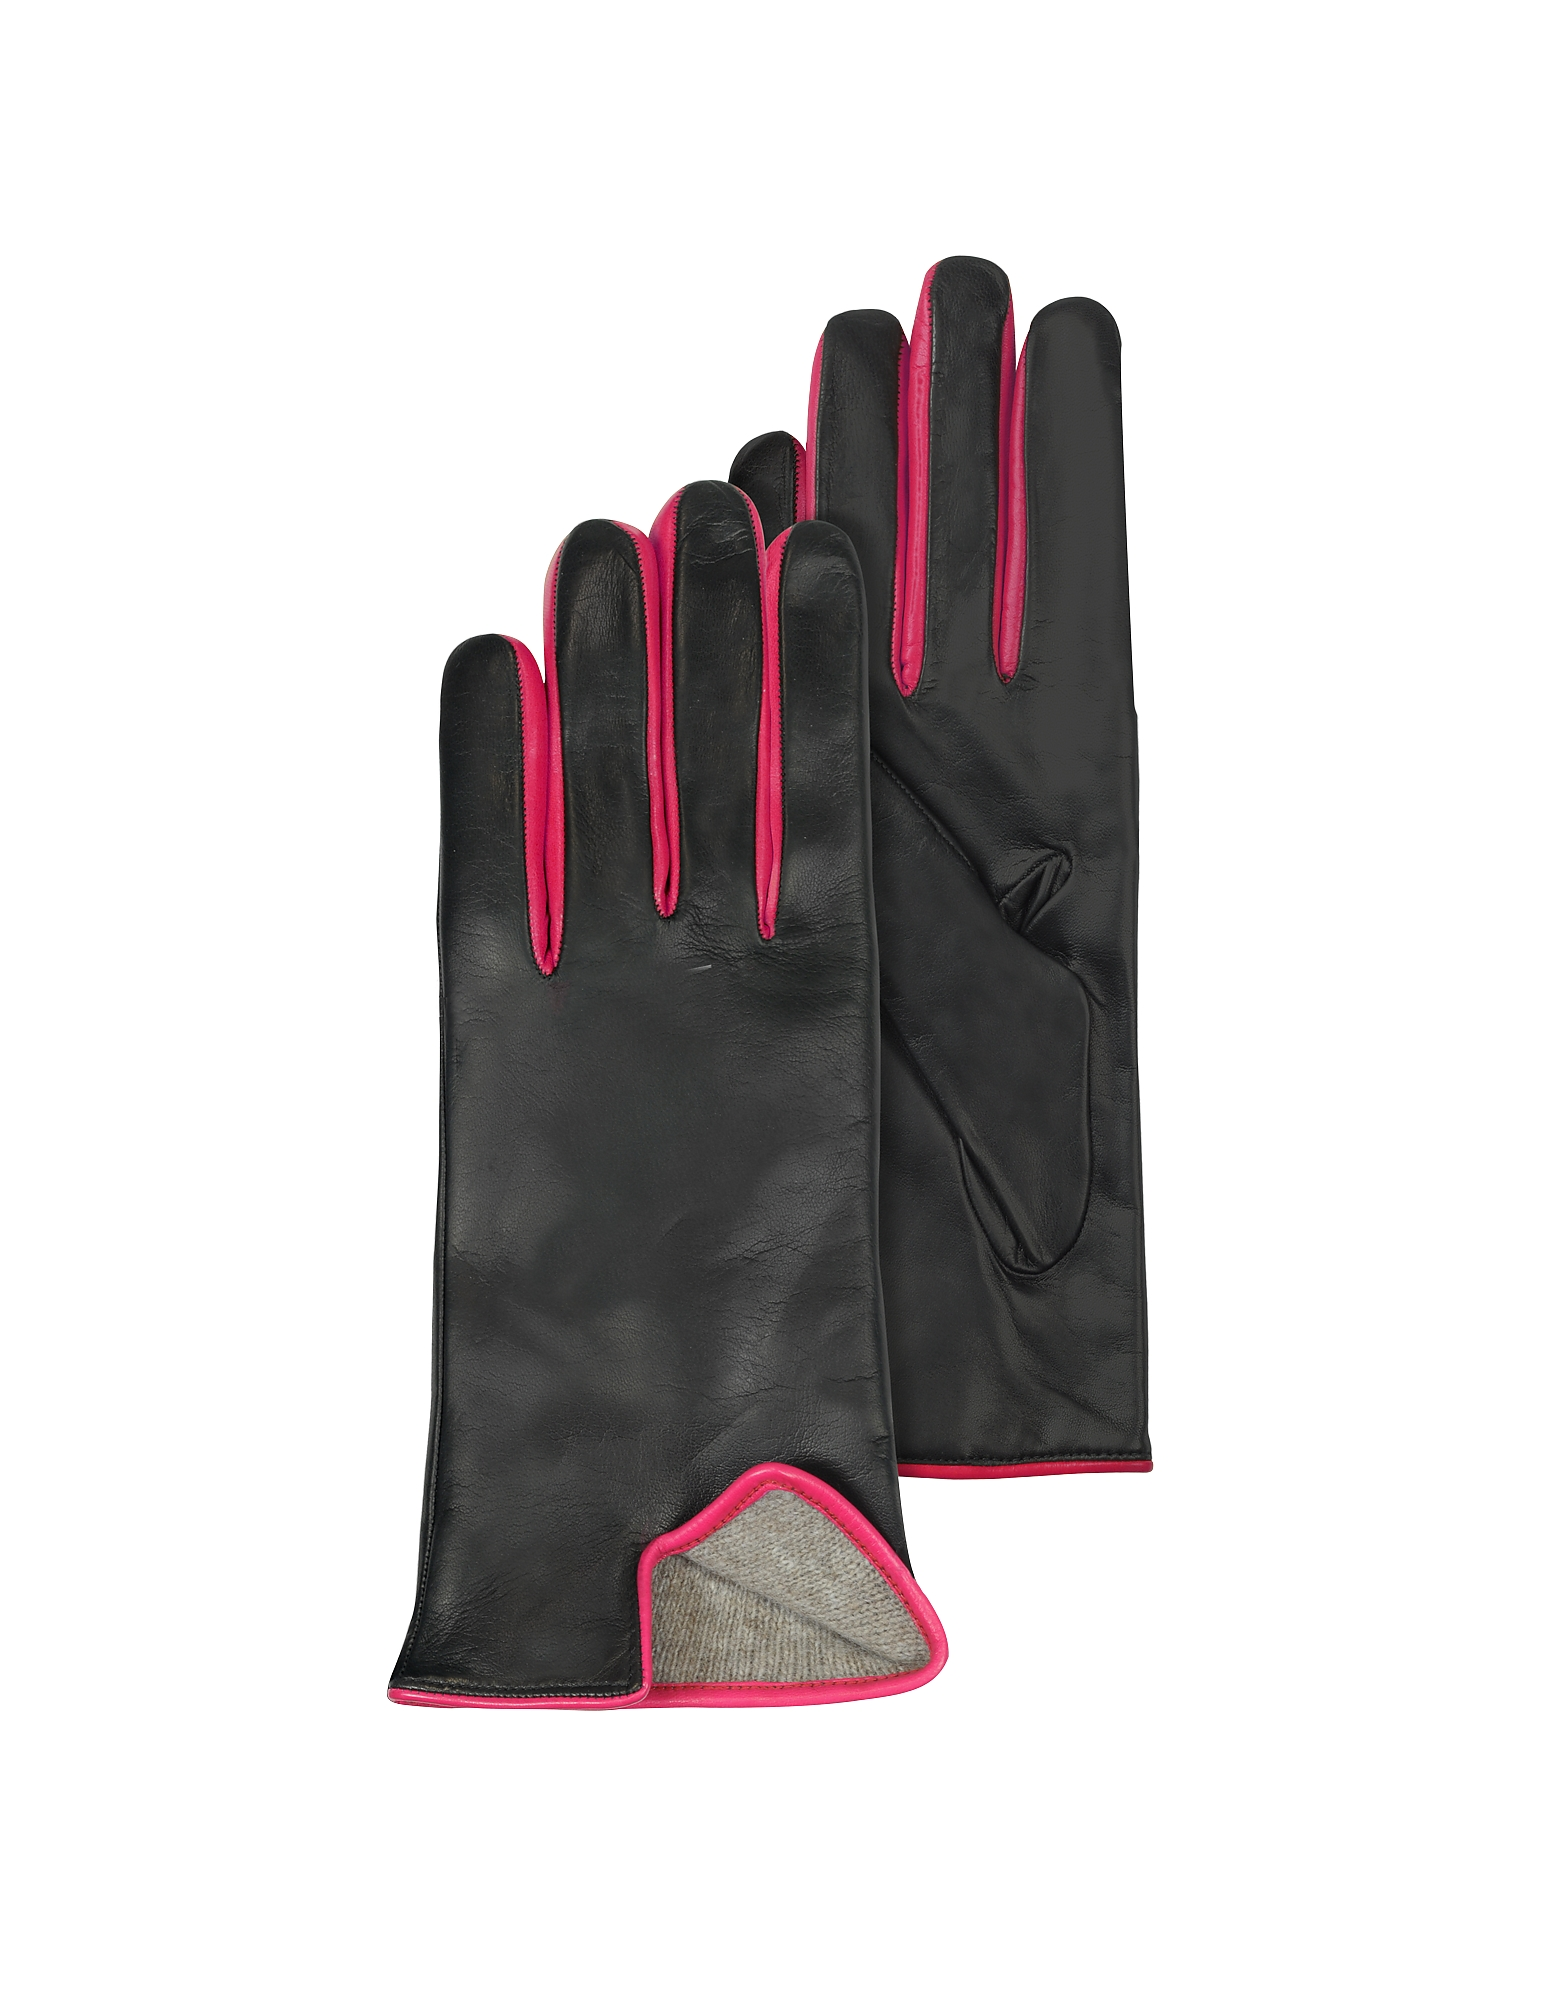 Black & Fuchsia Cashmere Lined Leather Ladies' Gloves от Forzieri.com INT